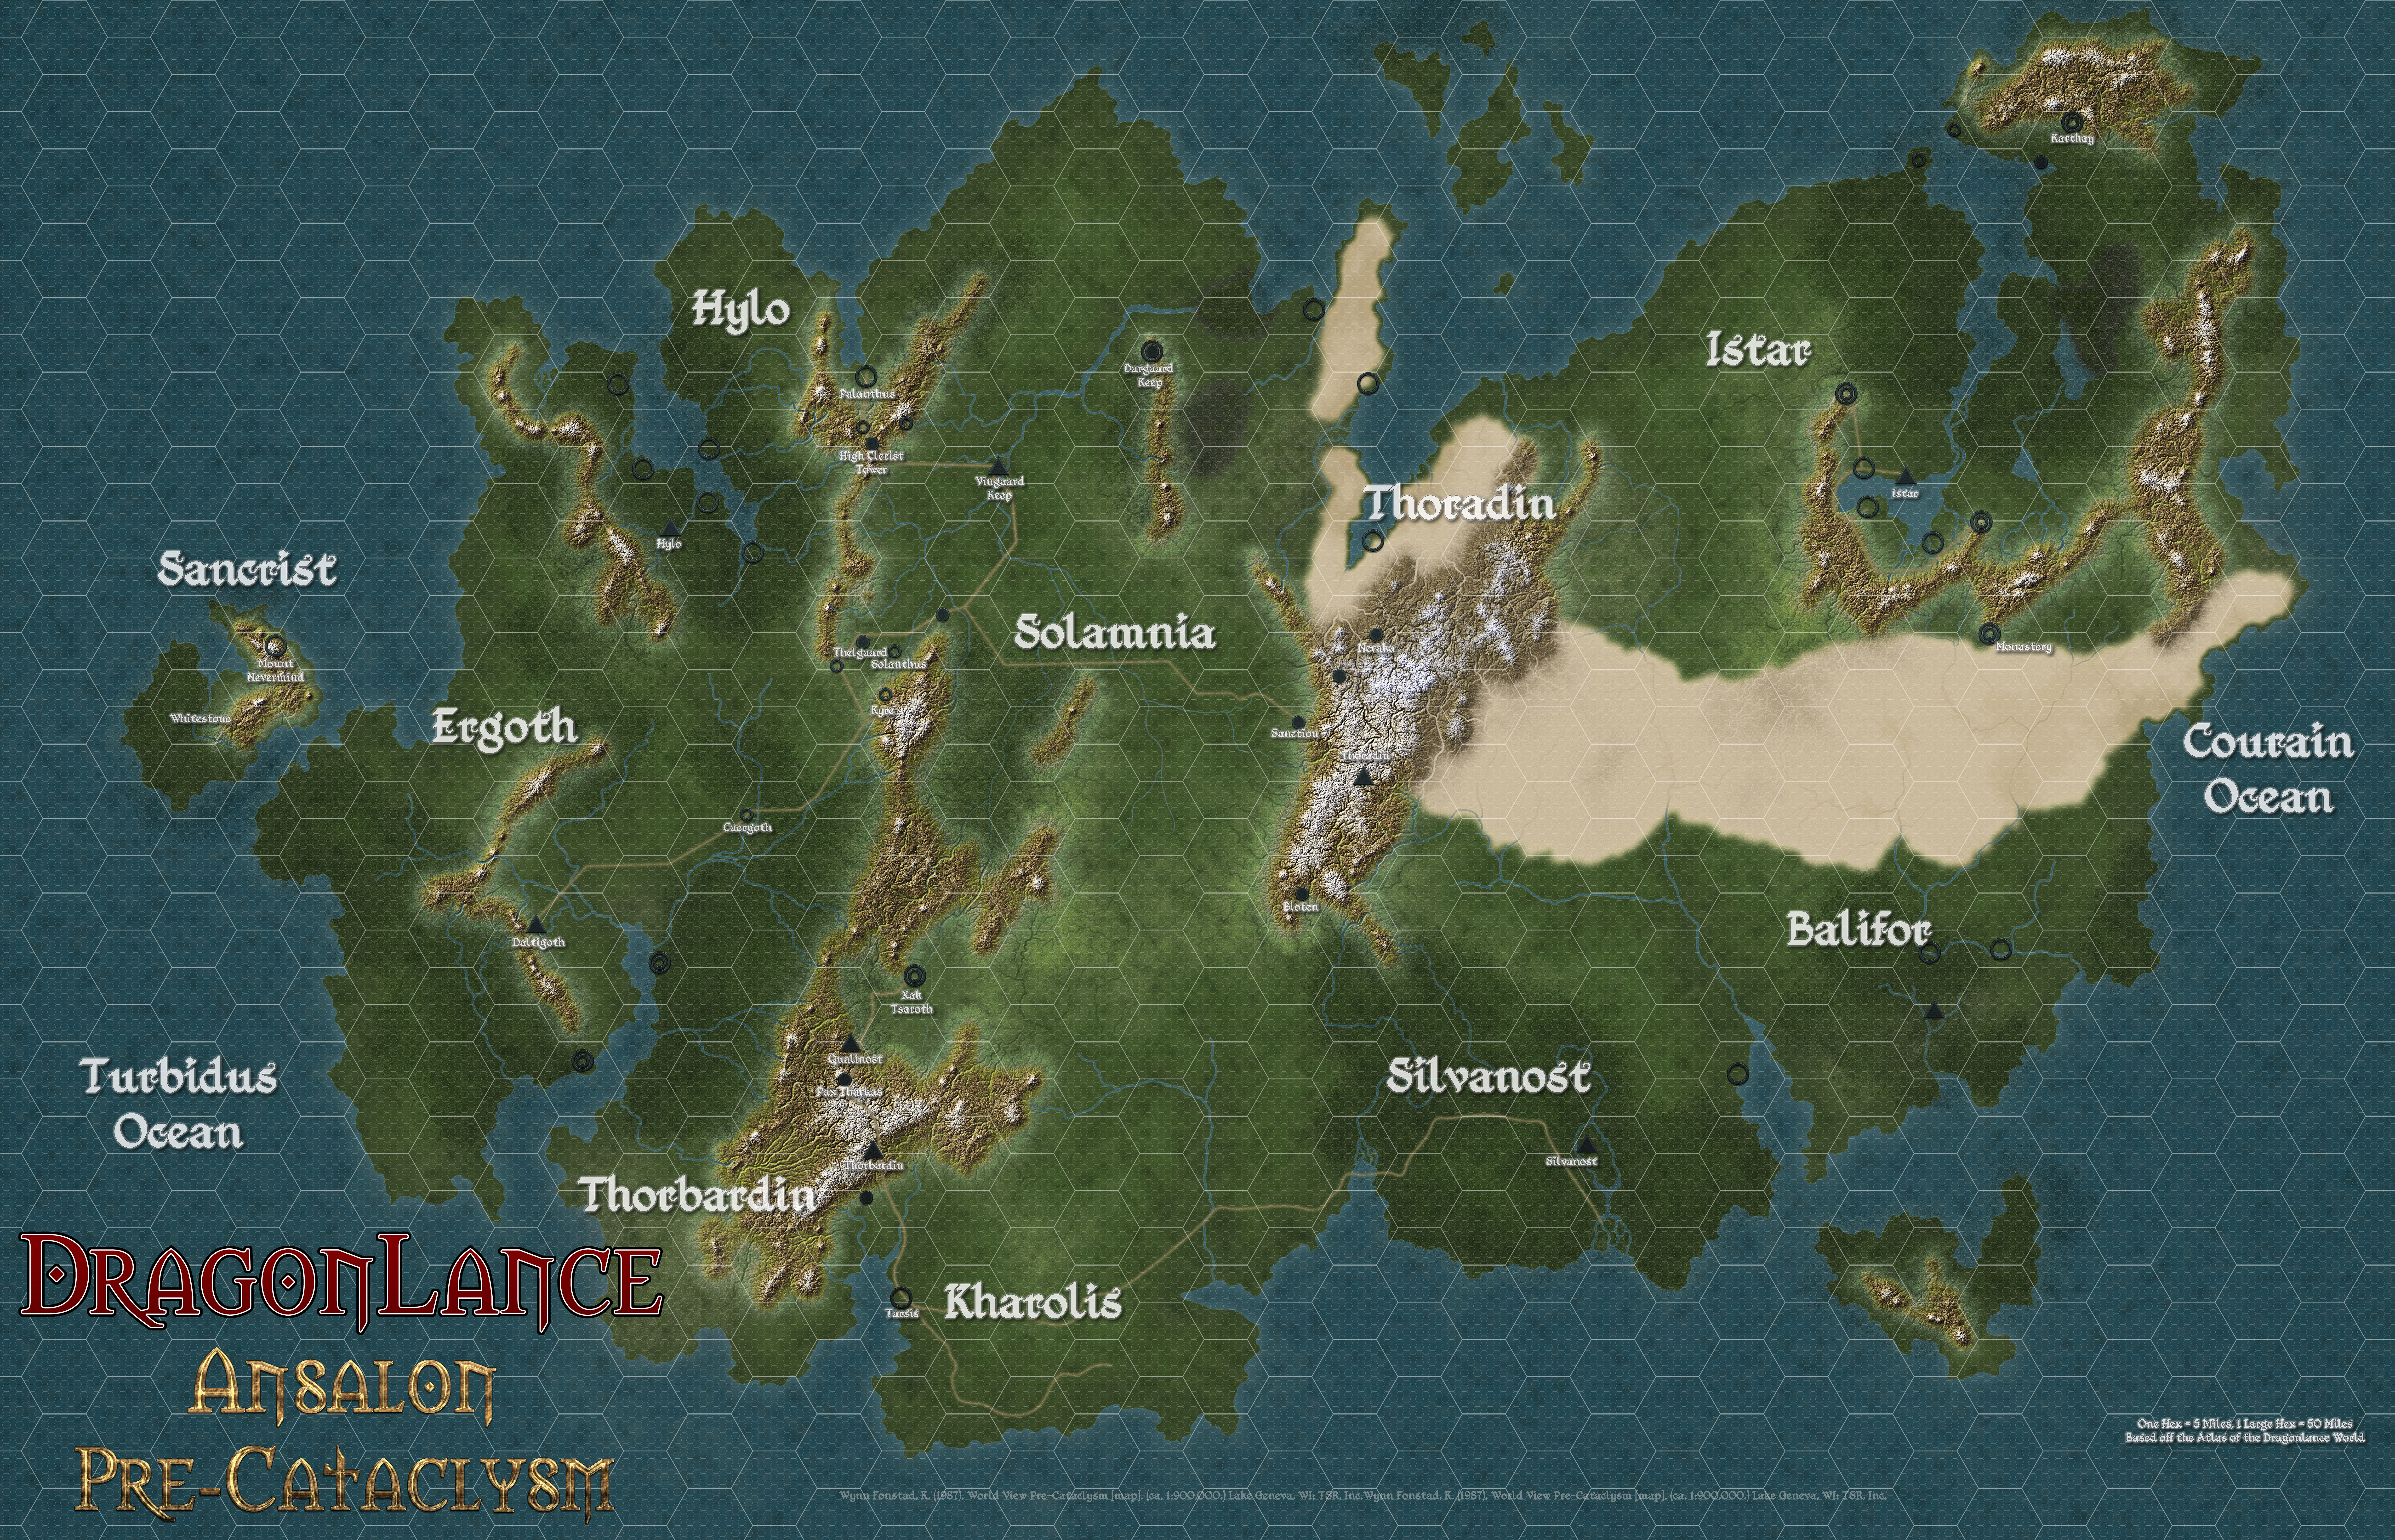 Pre-Cataclysm Map of Ansalon - The Piazza on production world map, ph world map, co world map, add world map, pr world map, earlier world map, col world map, son world map, mal world map, area world map, sec world map, pop world map, second world map, iphone world map, mea world map, palm world map, pri world map, br world map, key world map, hp world map,